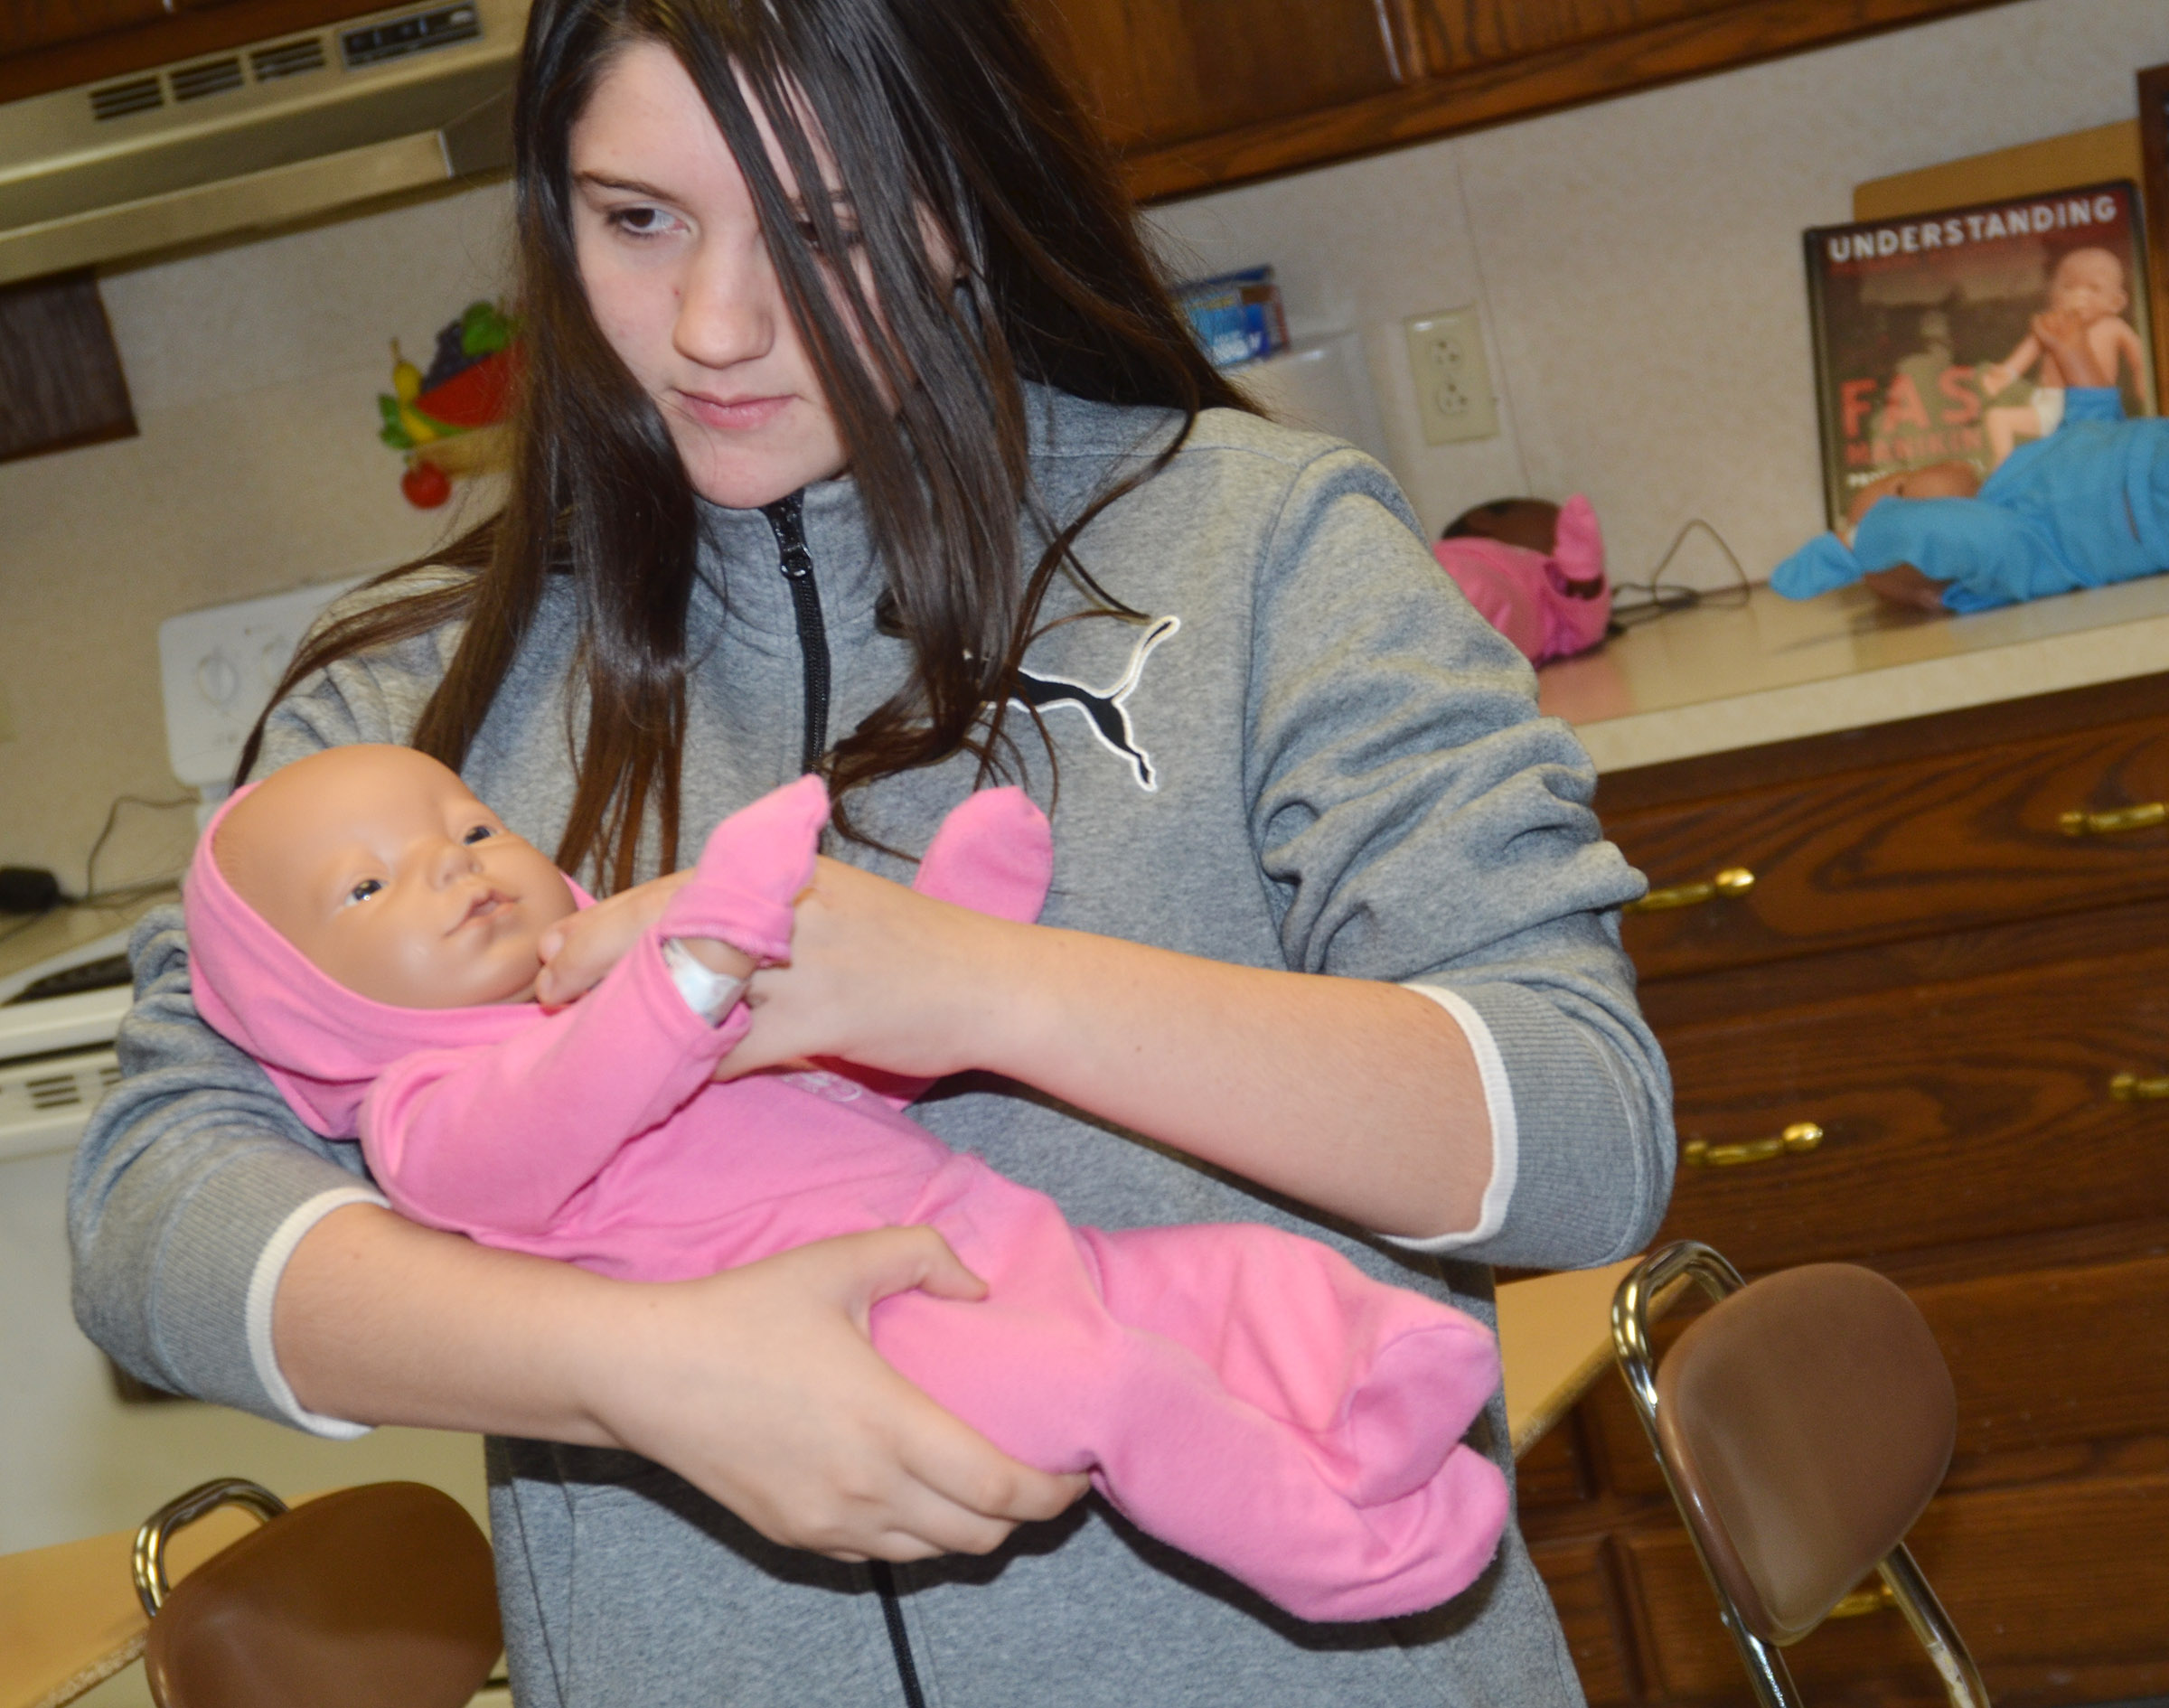 CHS freshman Paula Hoskins makes her Real Care baby laugh.